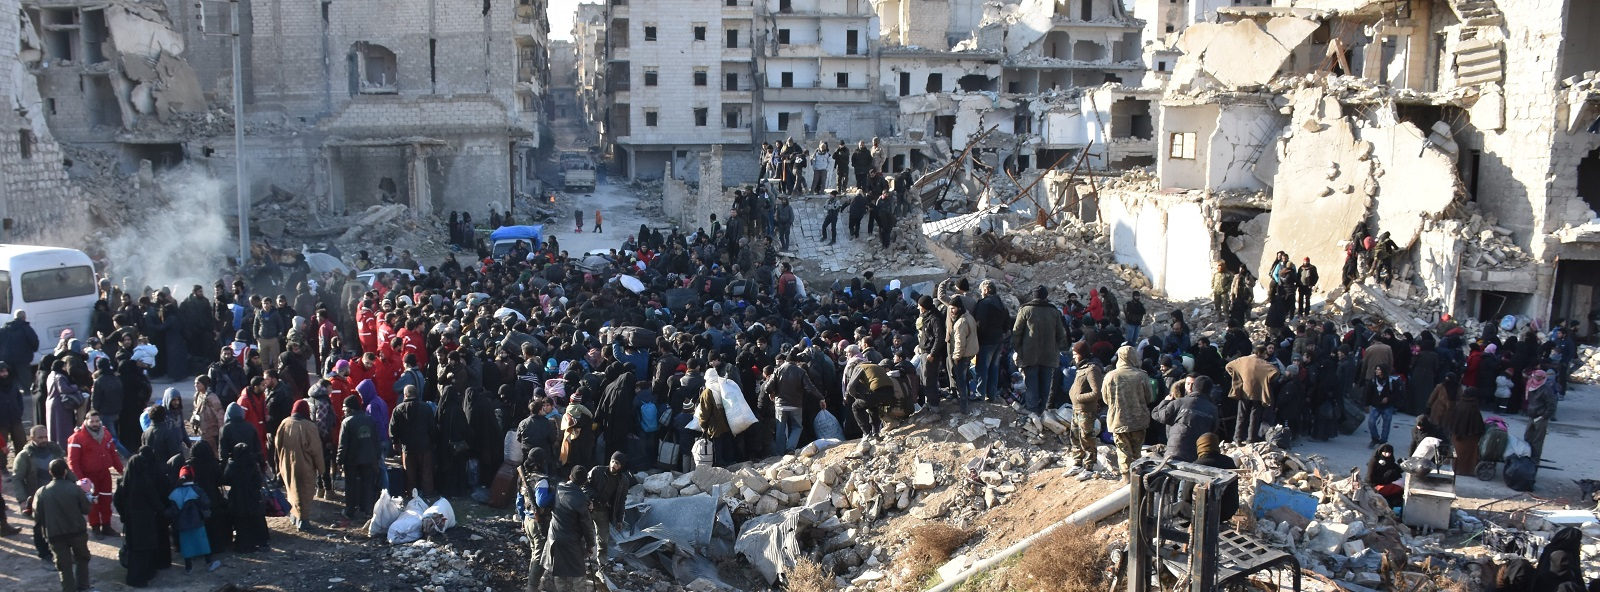 Civilians wait to be evacuated from East Aleppo (Photo: Mustafa Sultan/Getty Images)